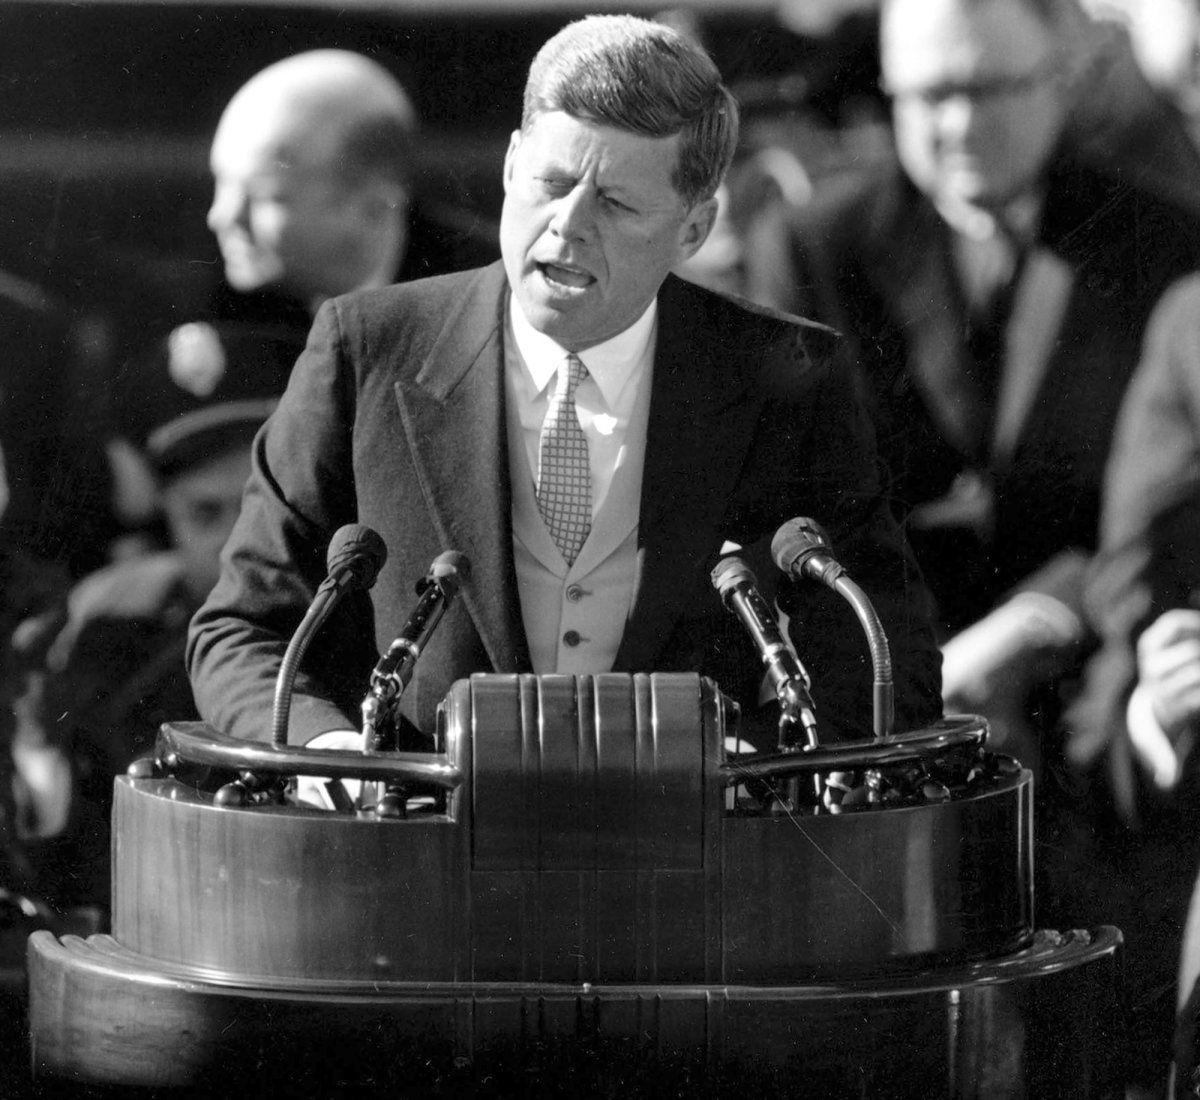 John F Kennedy Is Sworn In As The 35th President Of The